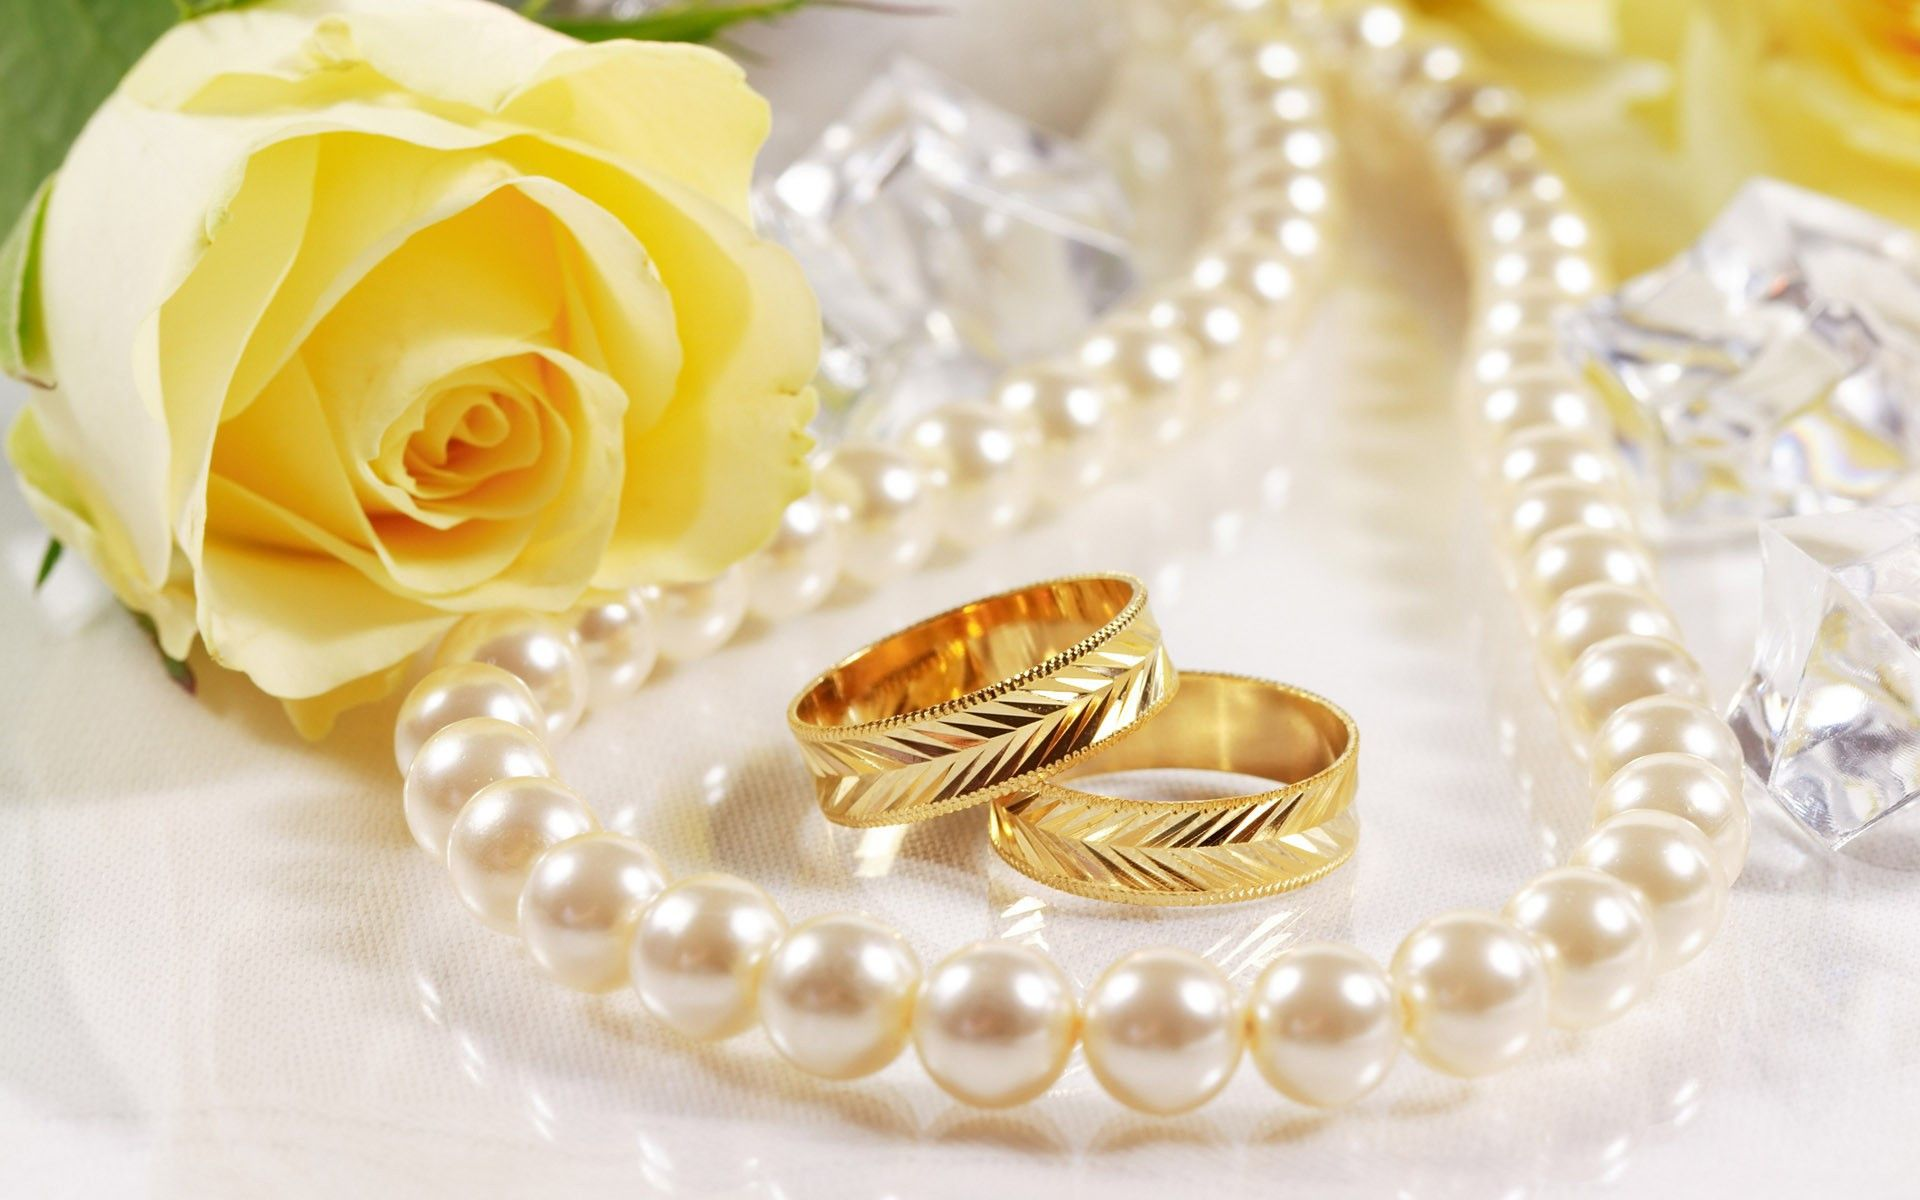 pics of wedding rings Wedding Ring and Flower Rose Wallpaper HD 11 High Resolution Wallpaper Full Size